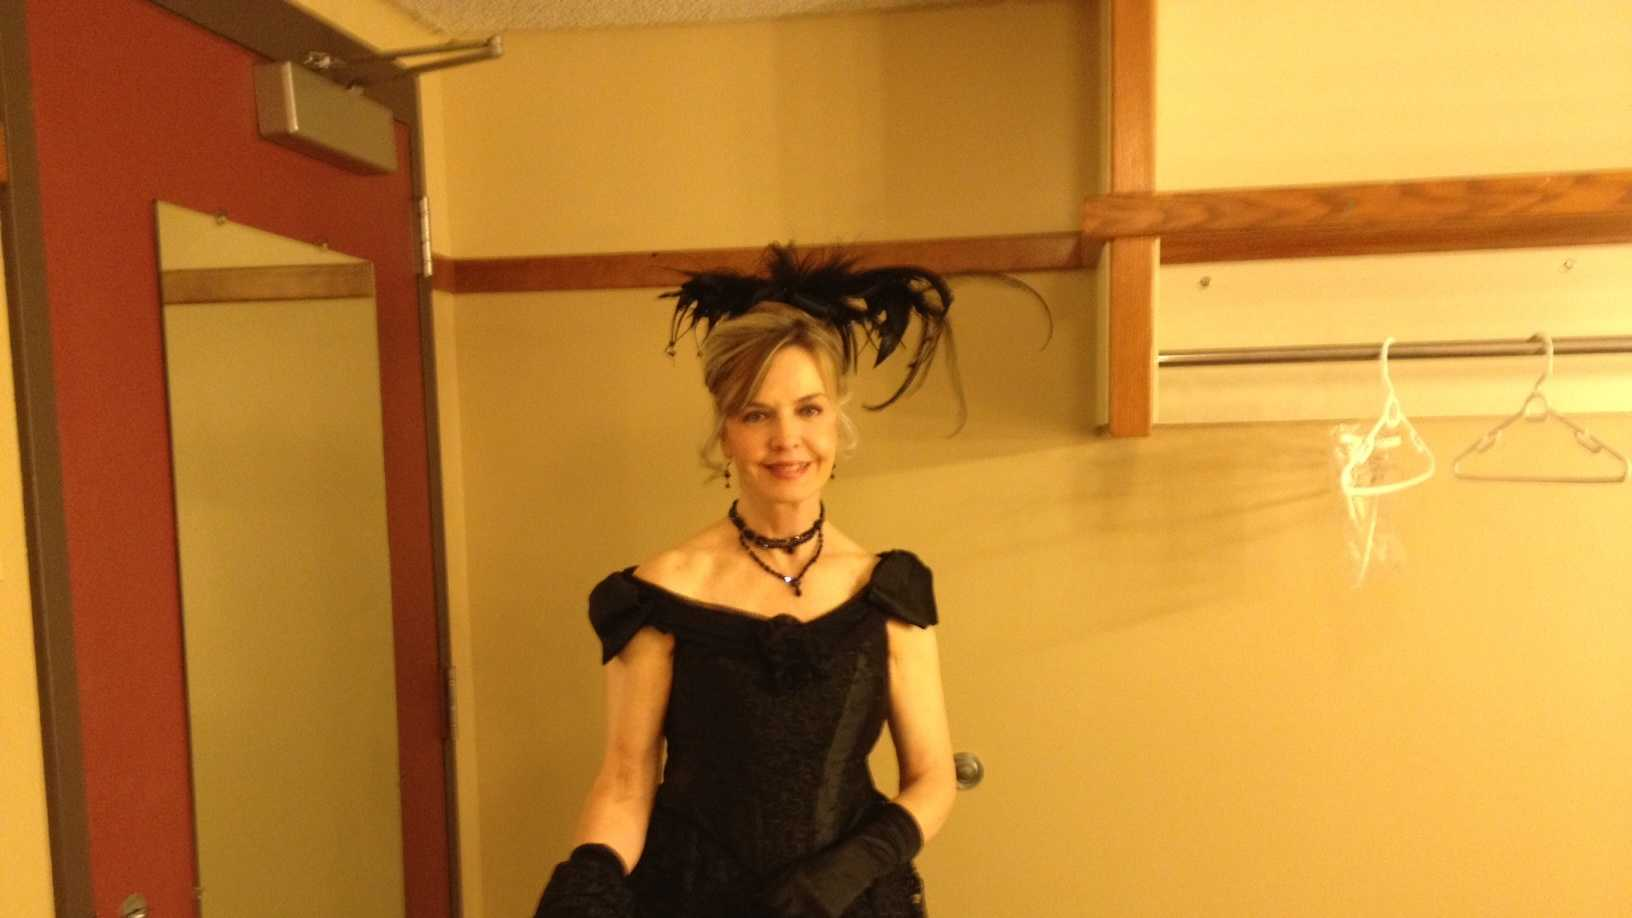 Channel 4 Action News anchor Sally Wiggin took the stage on opening night of the Pittsburgh Ballet Theatre's production of Moulin Rouge at the Benedum Center.